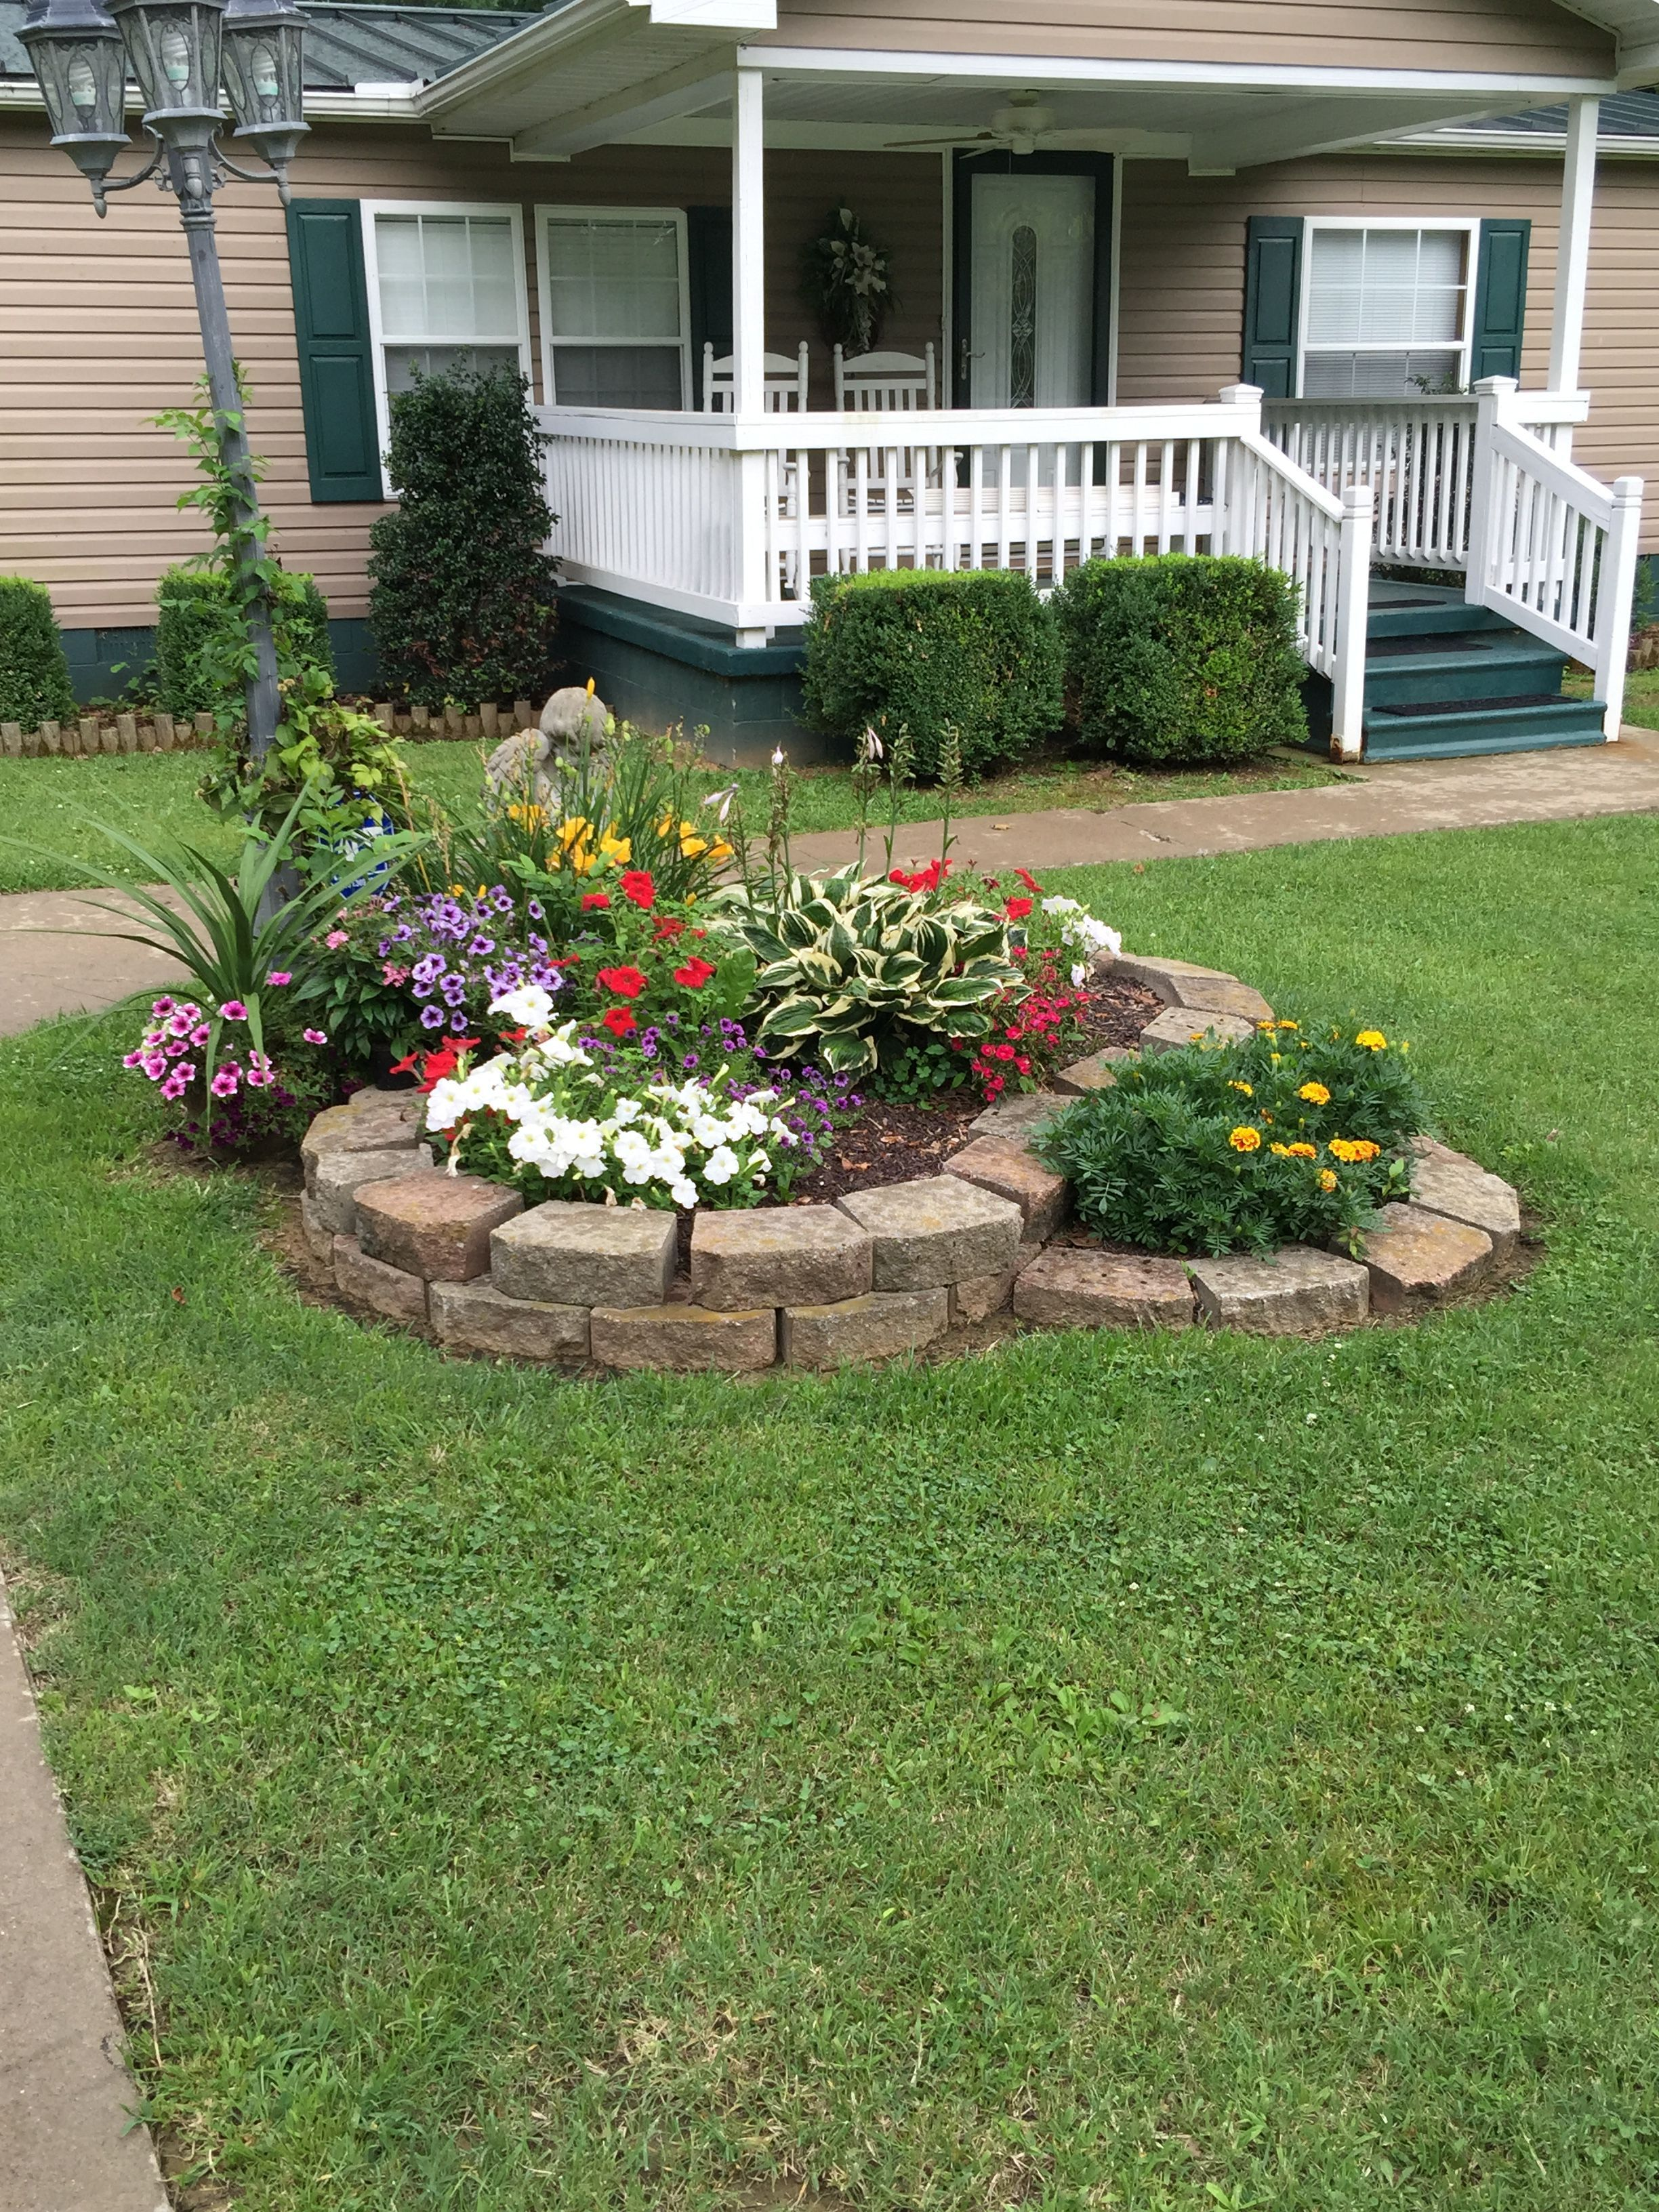 Pin By My Info On Seamstress1955 | Front Yard Landscaping Design, Front Yard Garden, Backyard Landscaping Designs